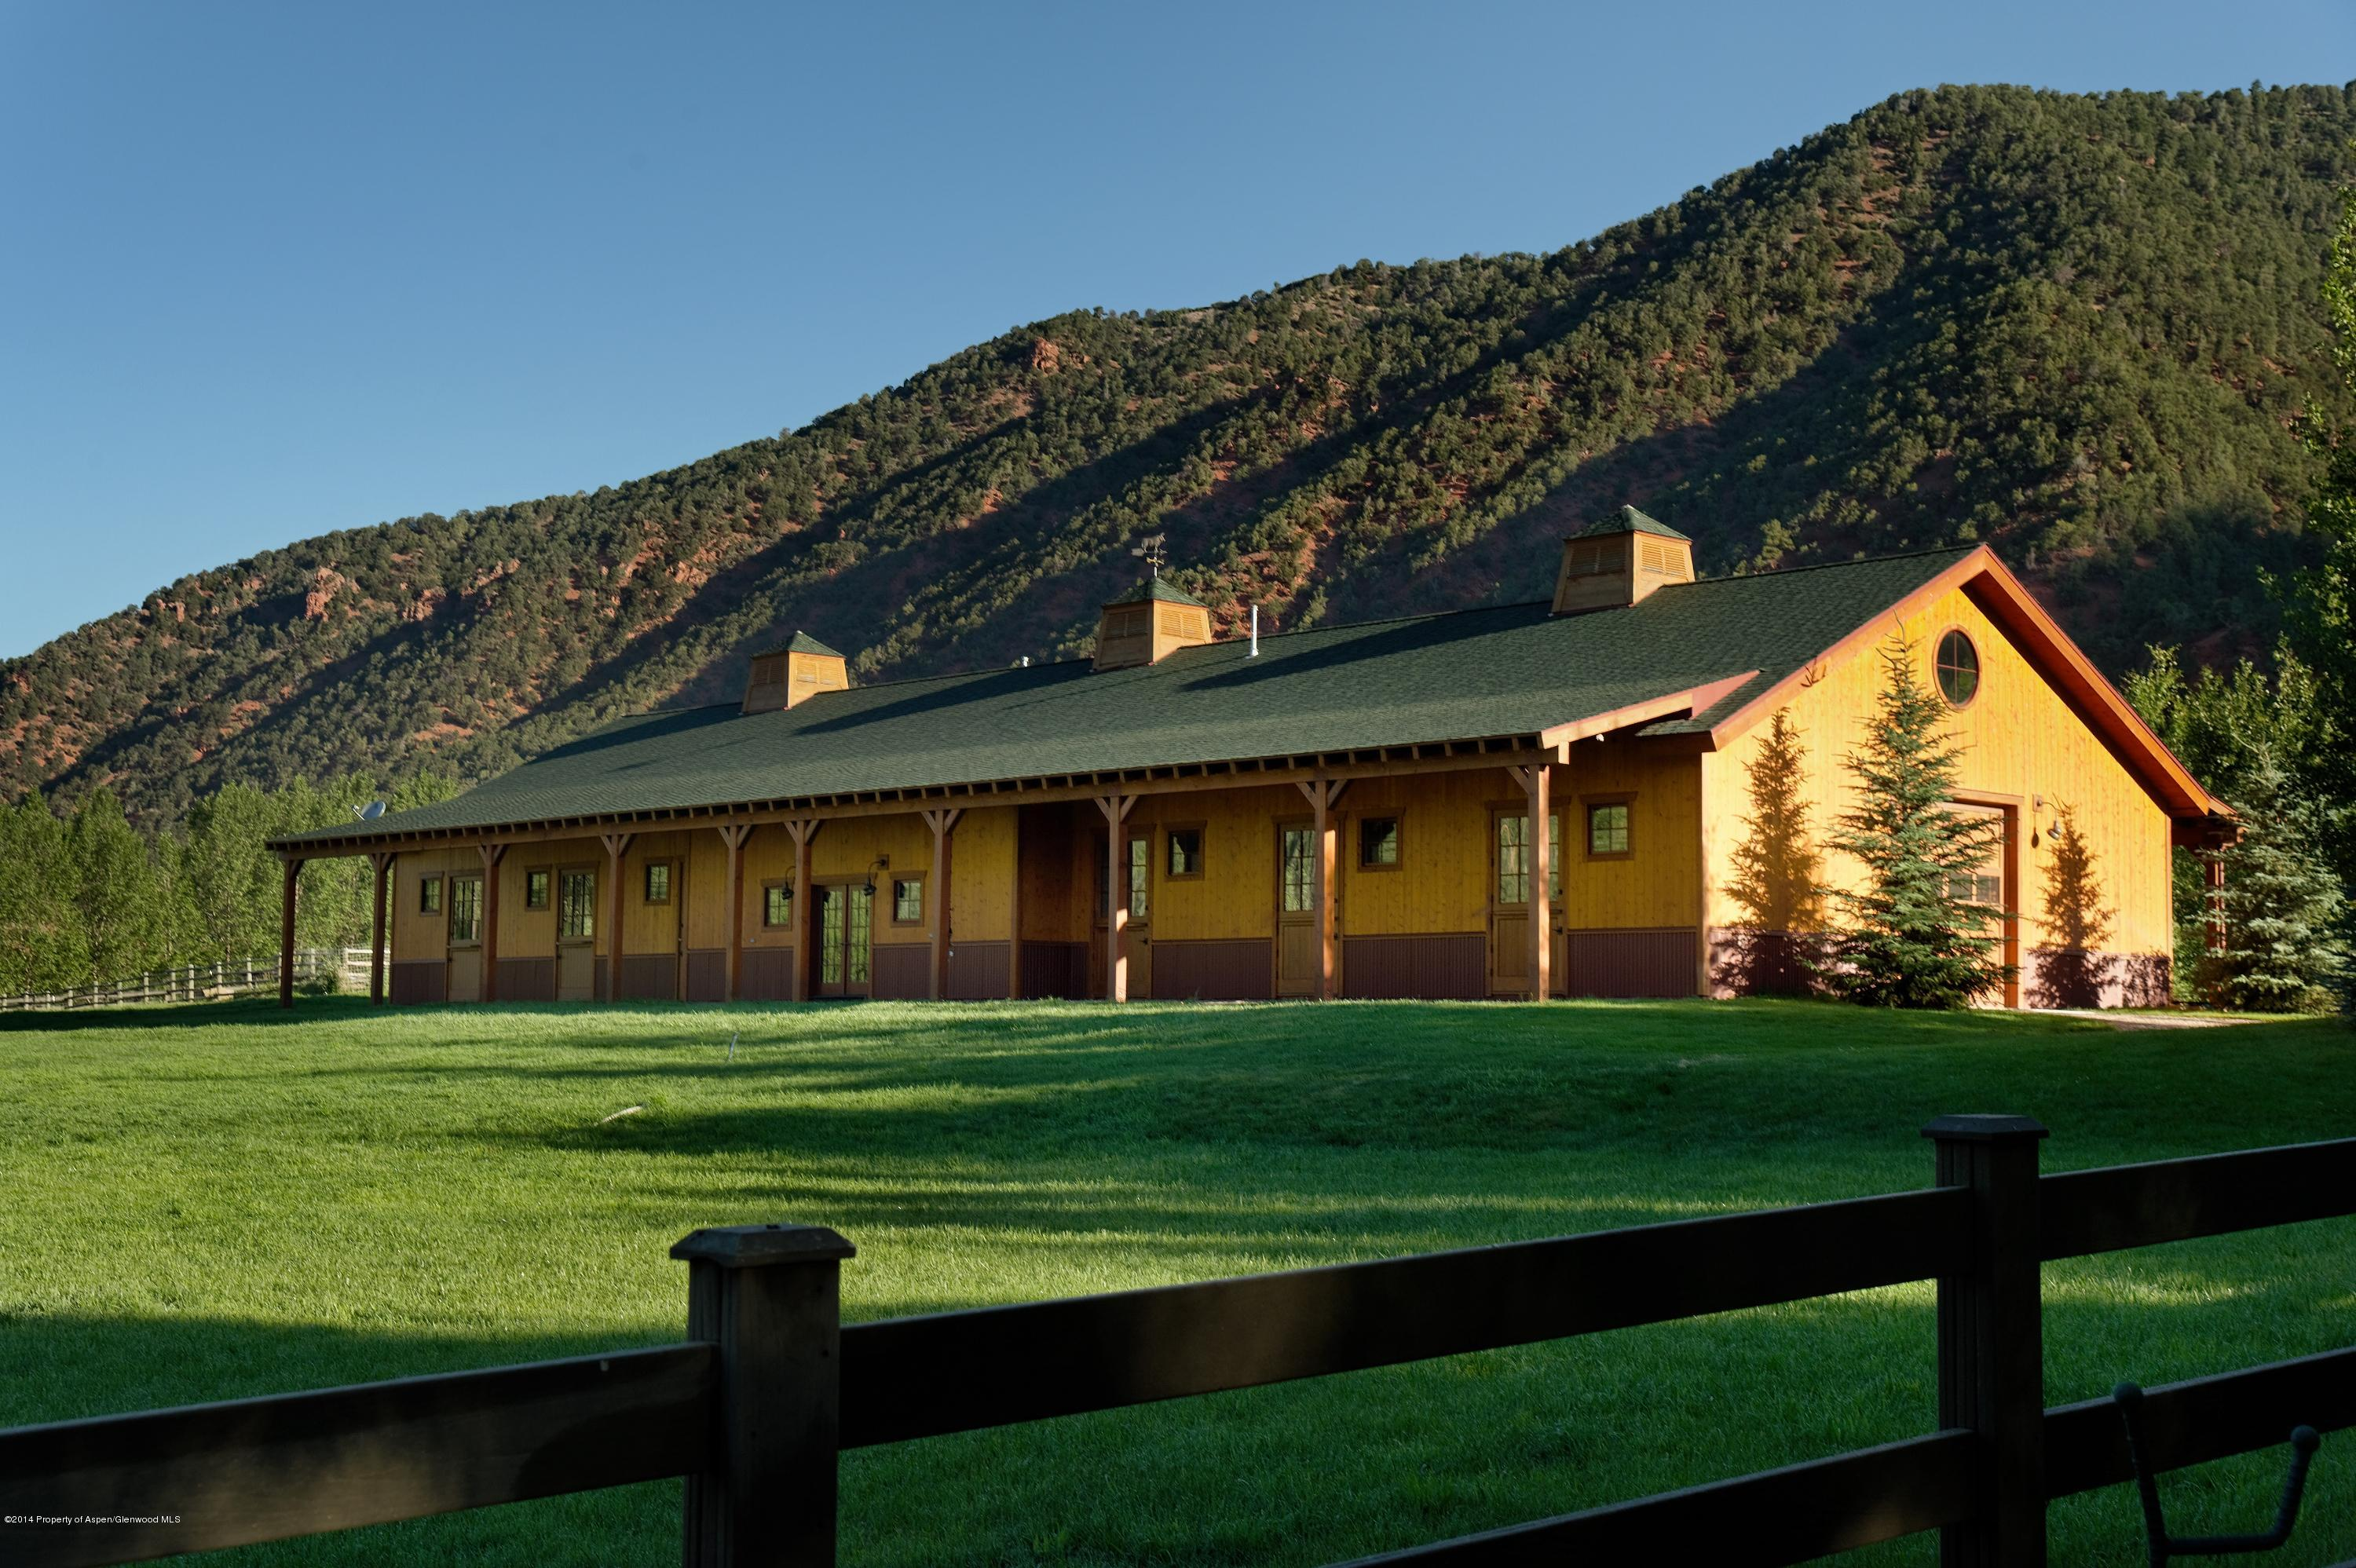 MLS# 135595 - 55 - 50 E River Ranch Road, Snowmass, CO 81654